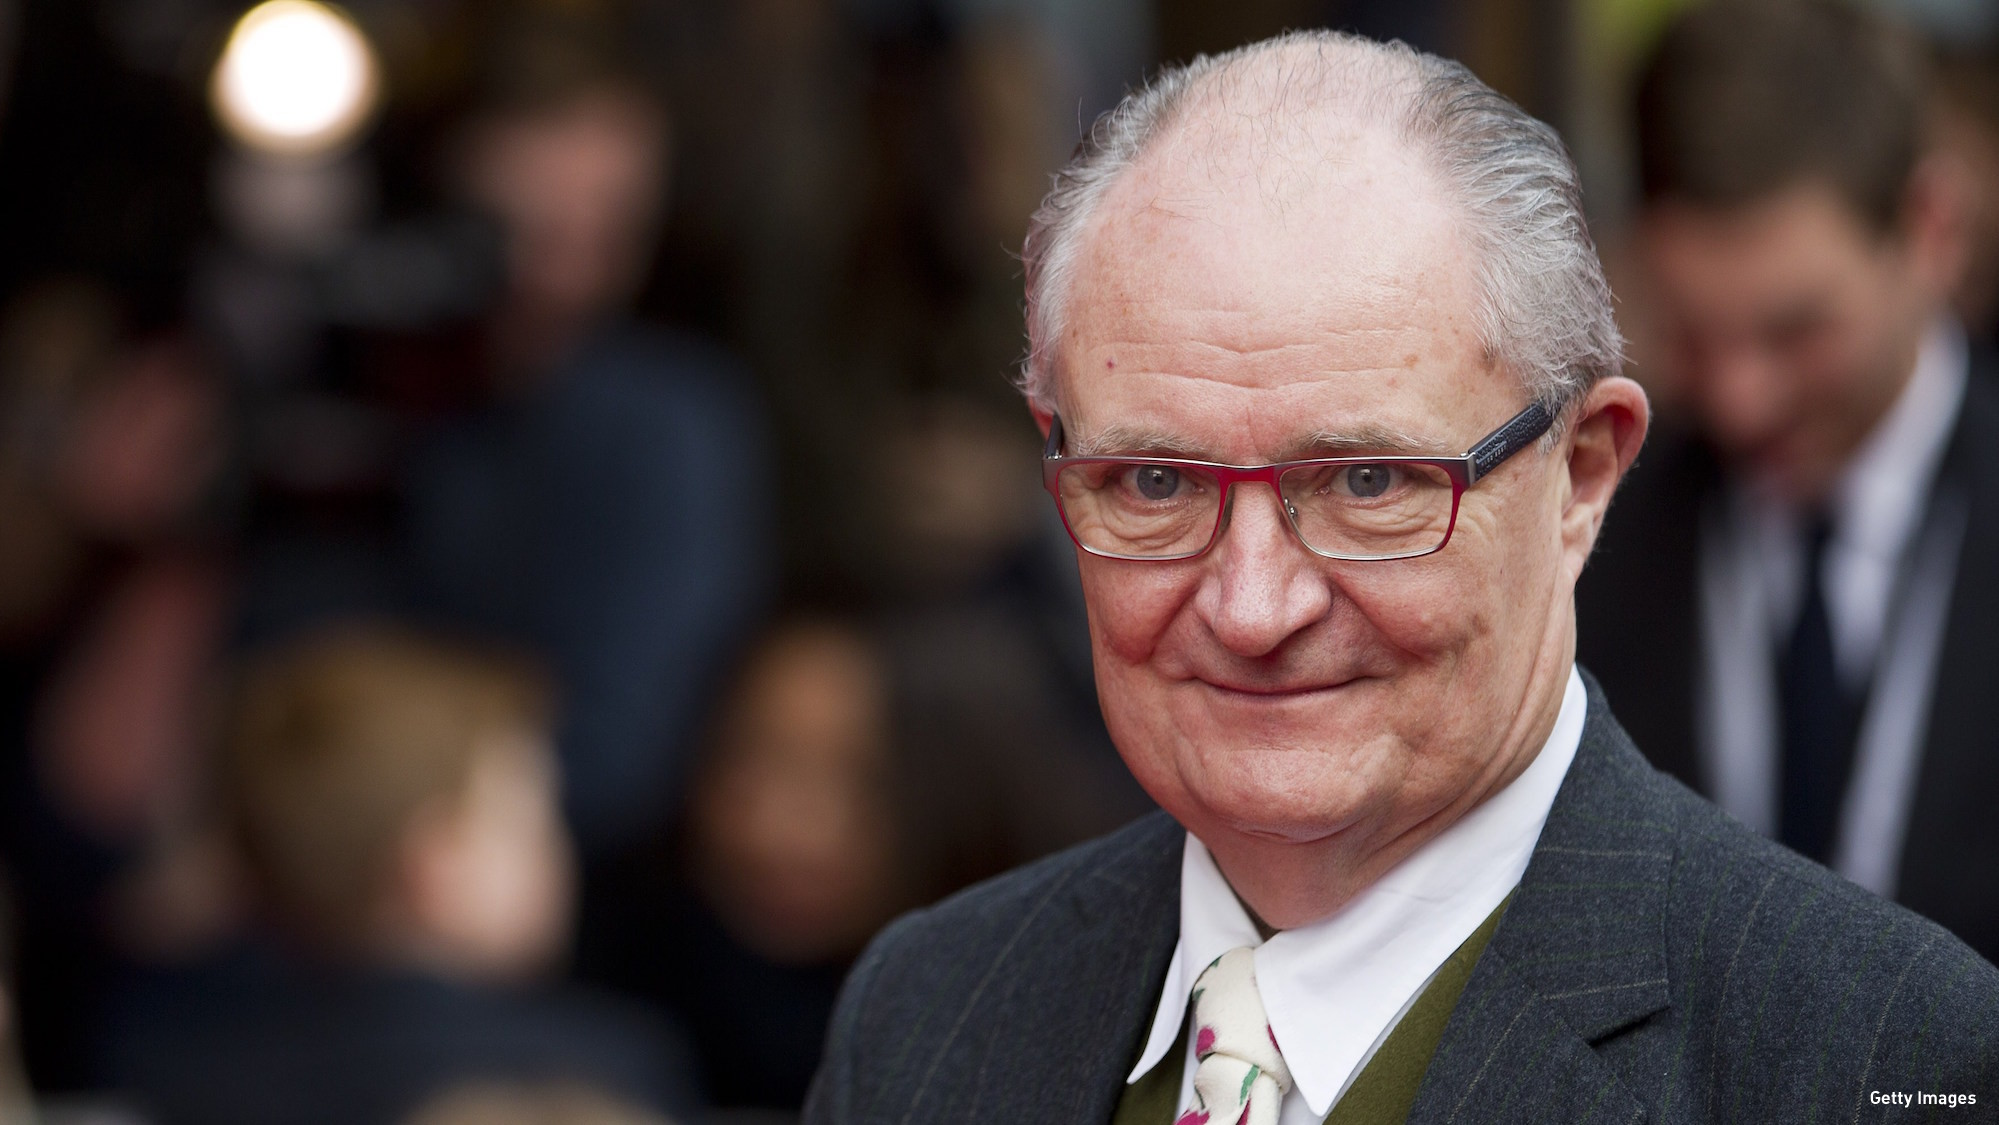 Jim Broadbent Joins the Cast of 'Game of Thrones' | Anglophenia ...: www.bbcamerica.com/anglophenia/2016/09/jim-broadbent-joins-the-cast...